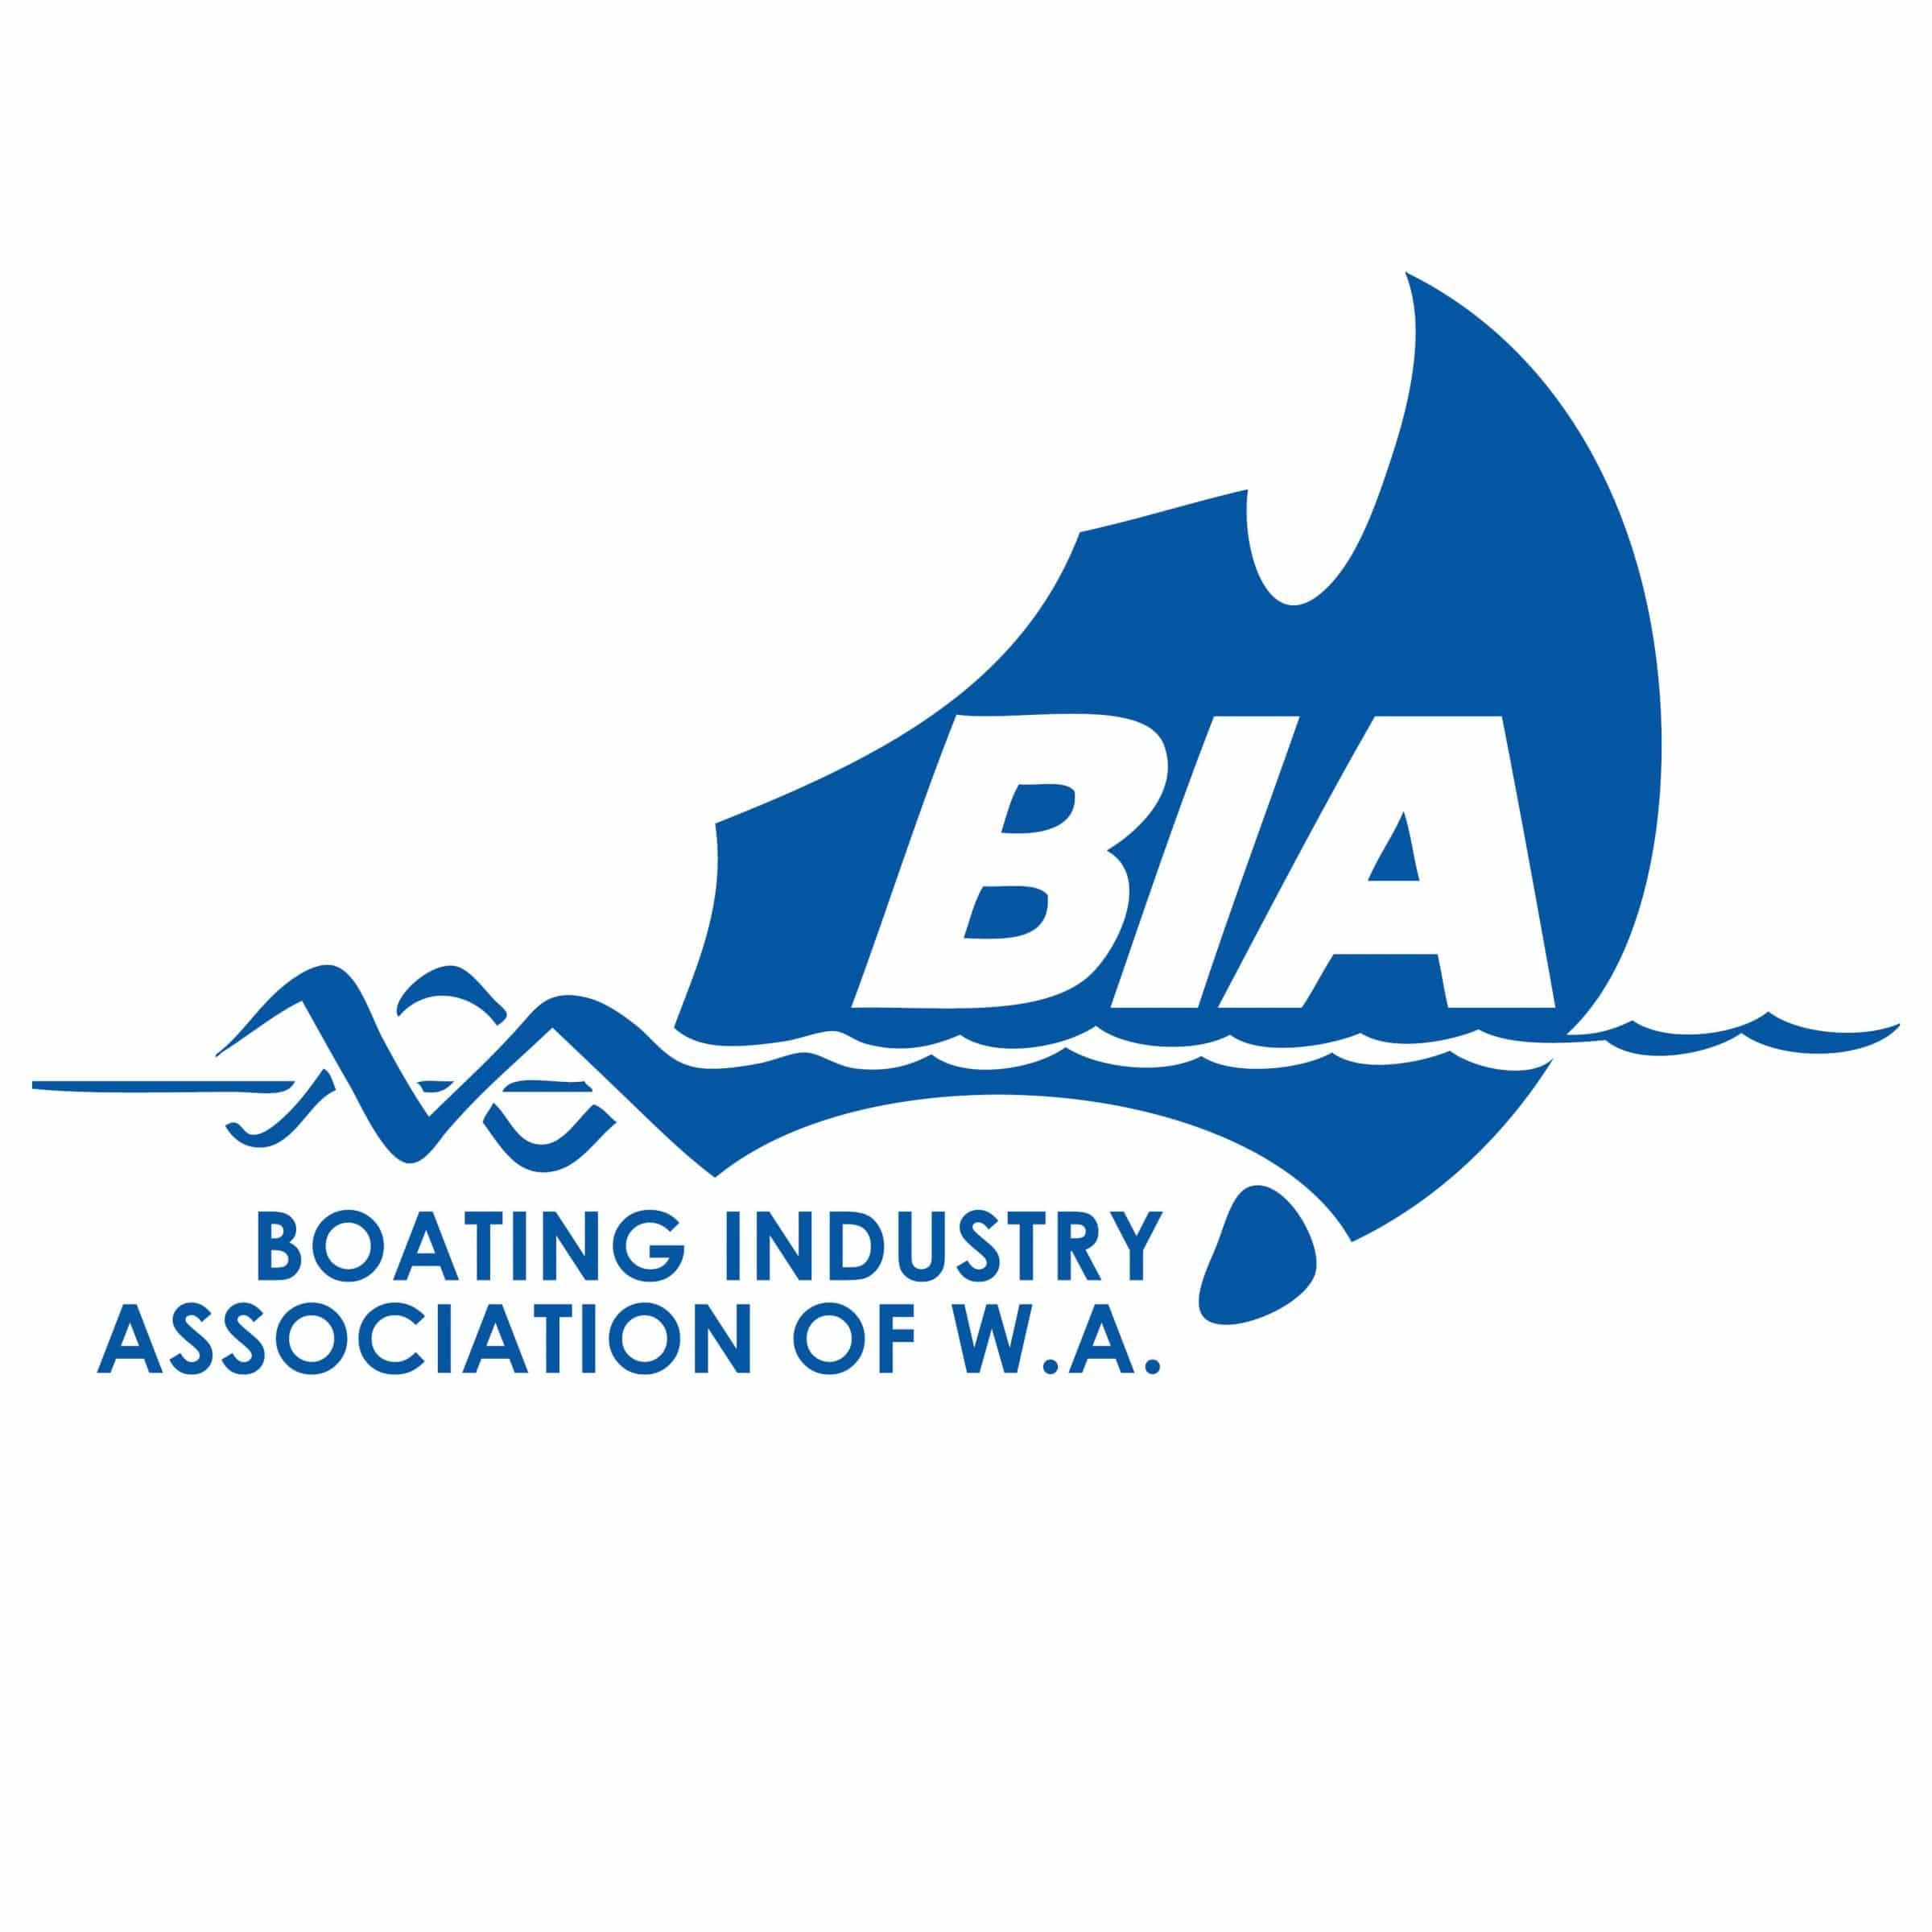 swan river sailing supporter boating industry association wa logo